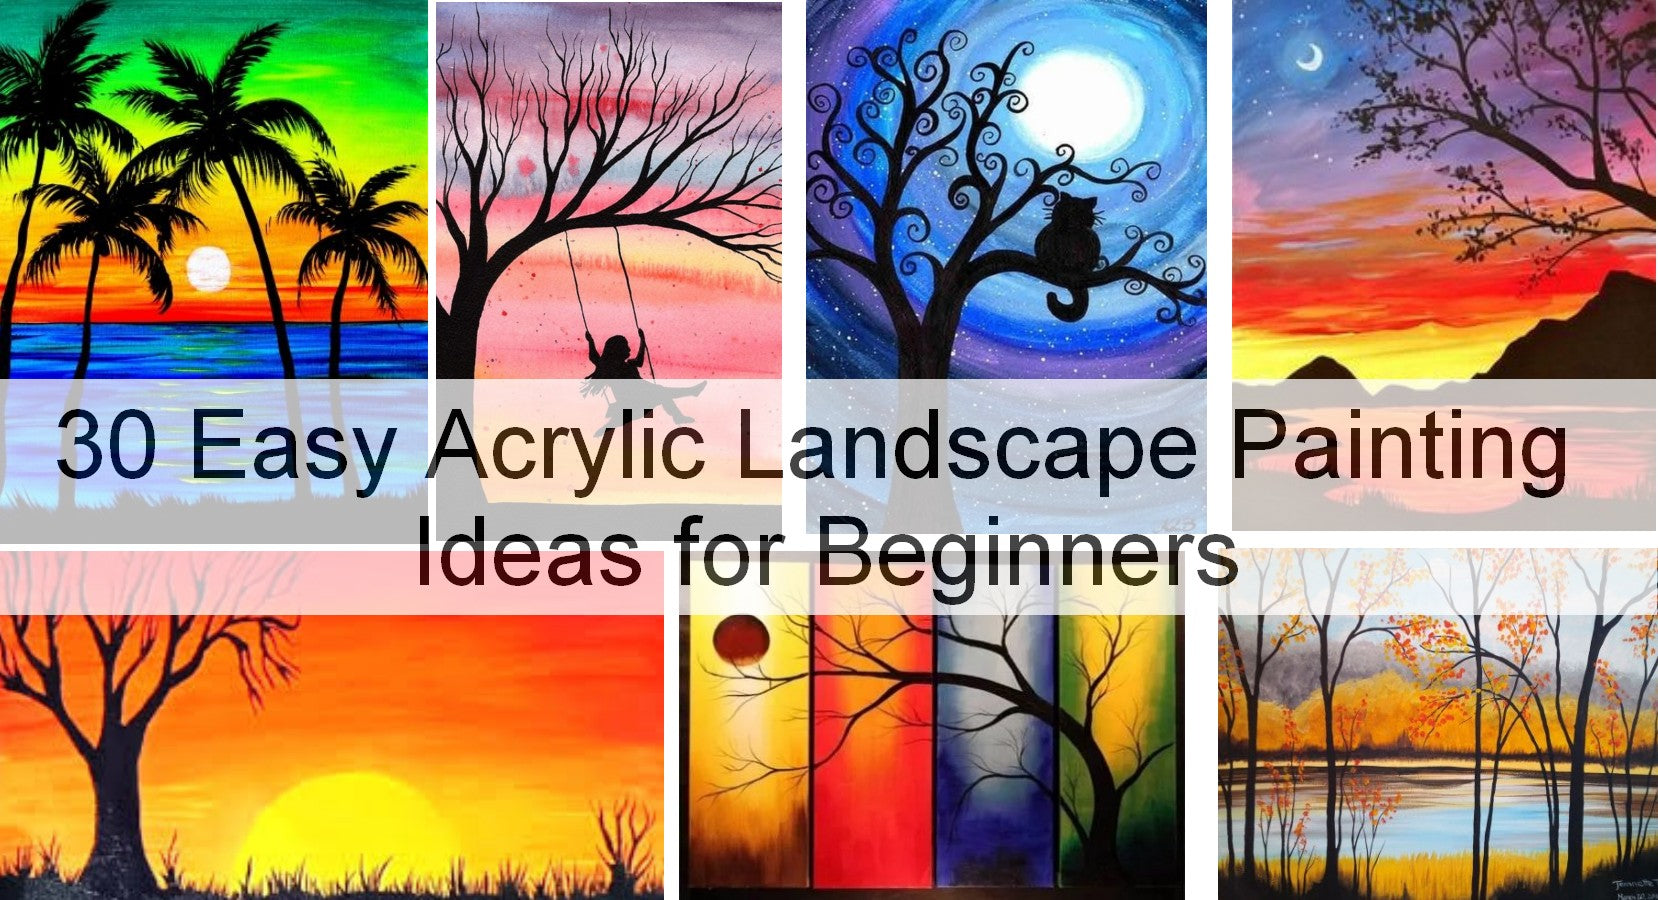 30 Easy Landscape Paintings Ideas for Beginners - Sunrise Paintings, Seascape Paintings, Mountain Landscape Paintings